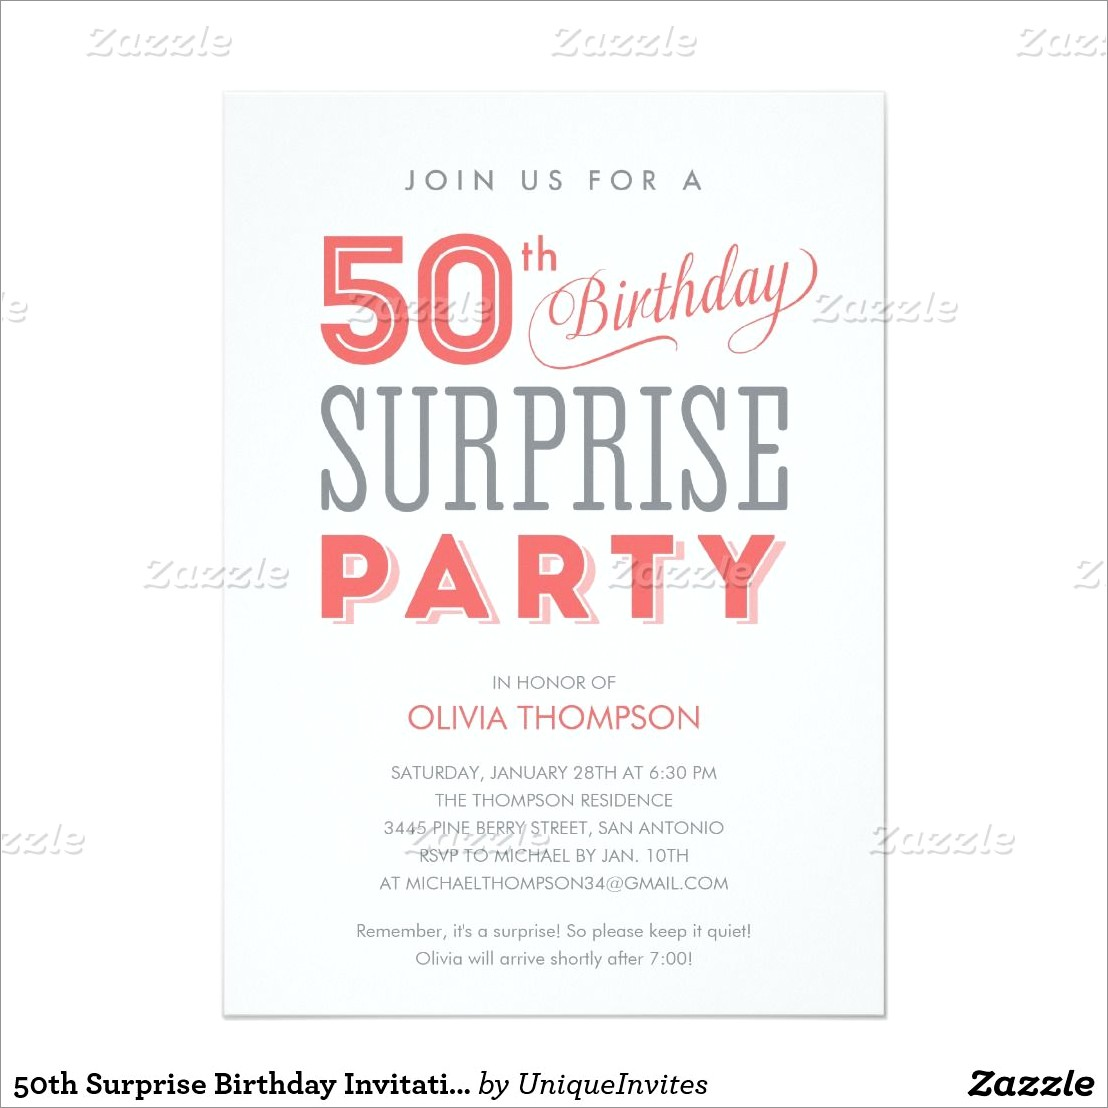 50th Birthday Surprise Invitation Wording